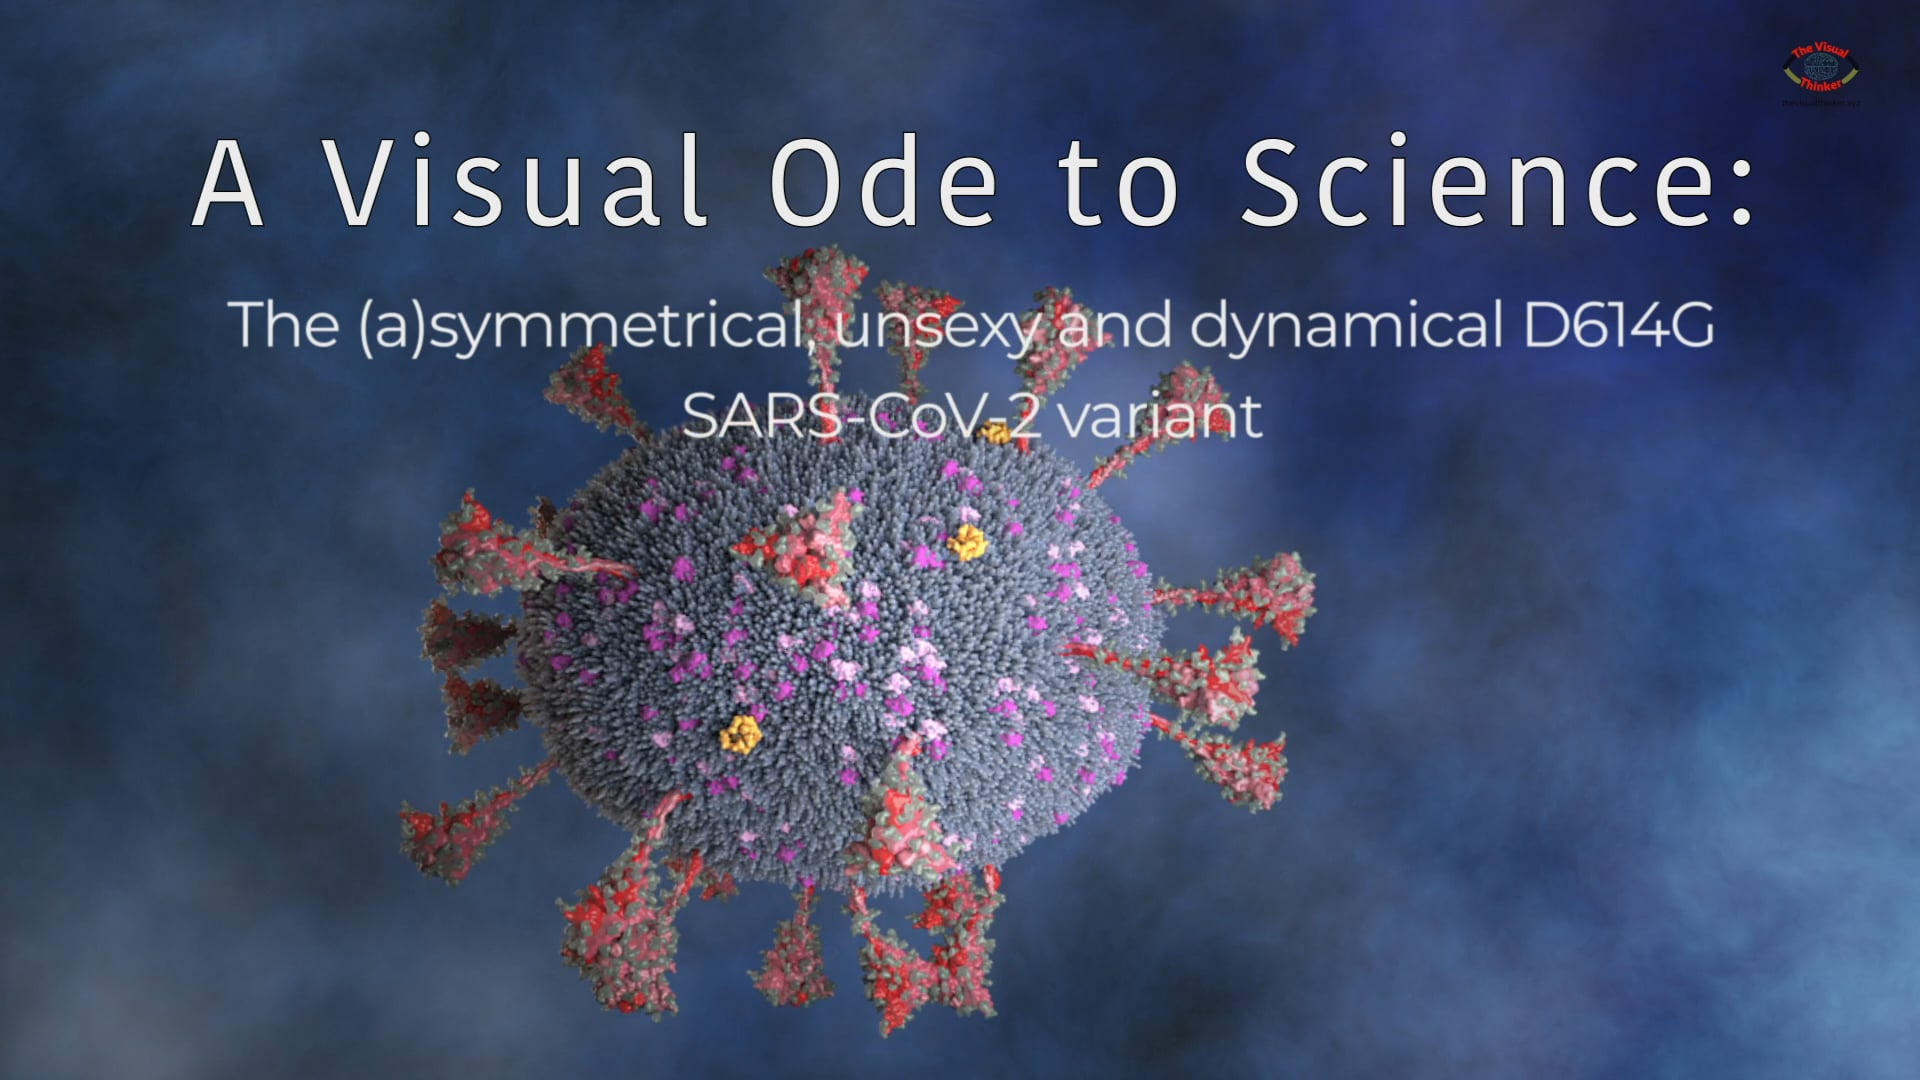 A Visual Ode to Science: The asymmetrical, unsexy and dynamical D614G  SARS-CoV-2 variant